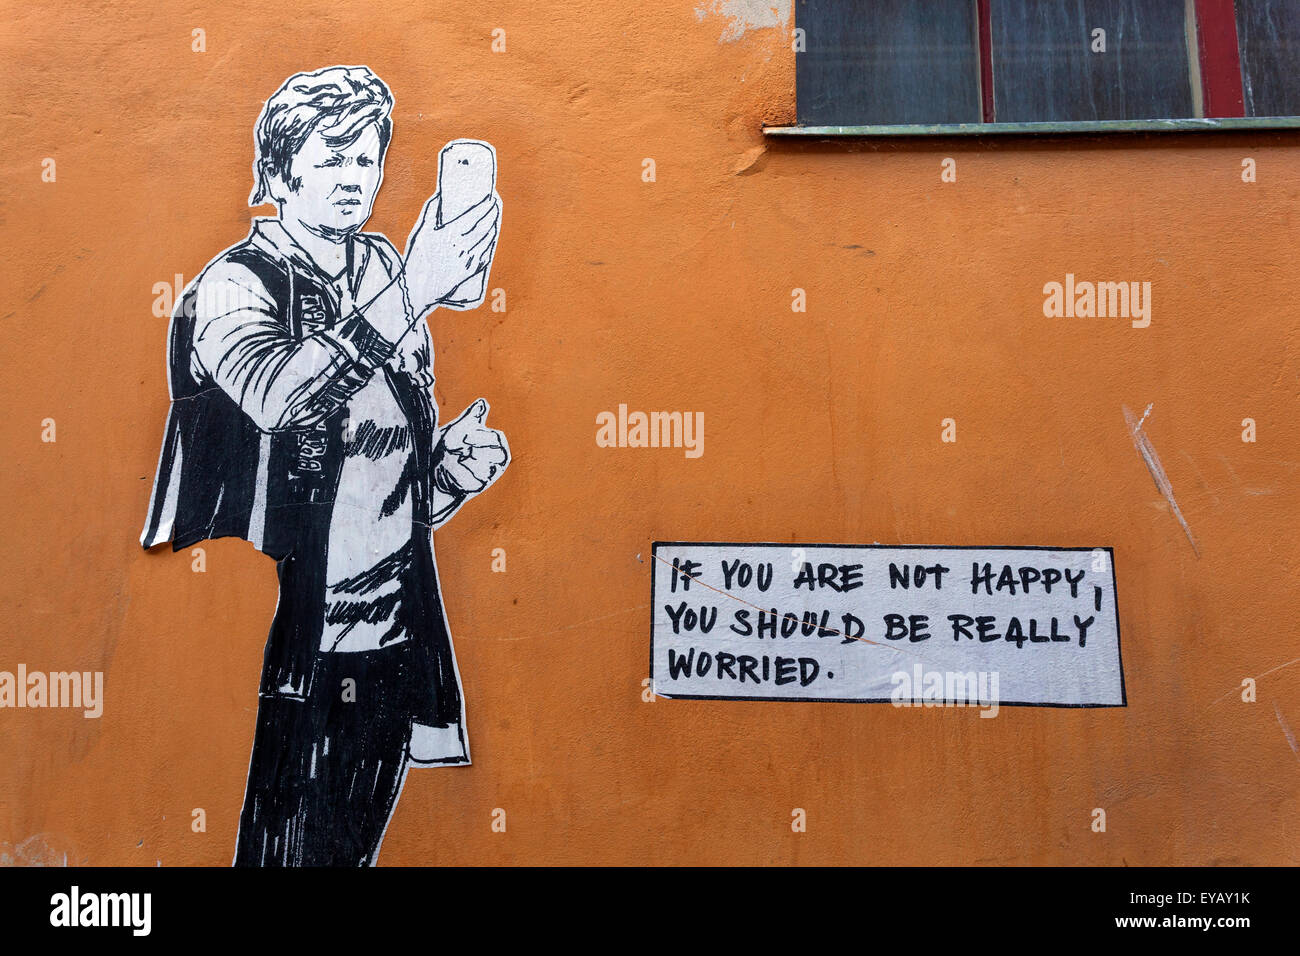 If You Are Not Happy You Should Be Really Worried. Street Art Cesky Krumlov, Czech - Stock Image